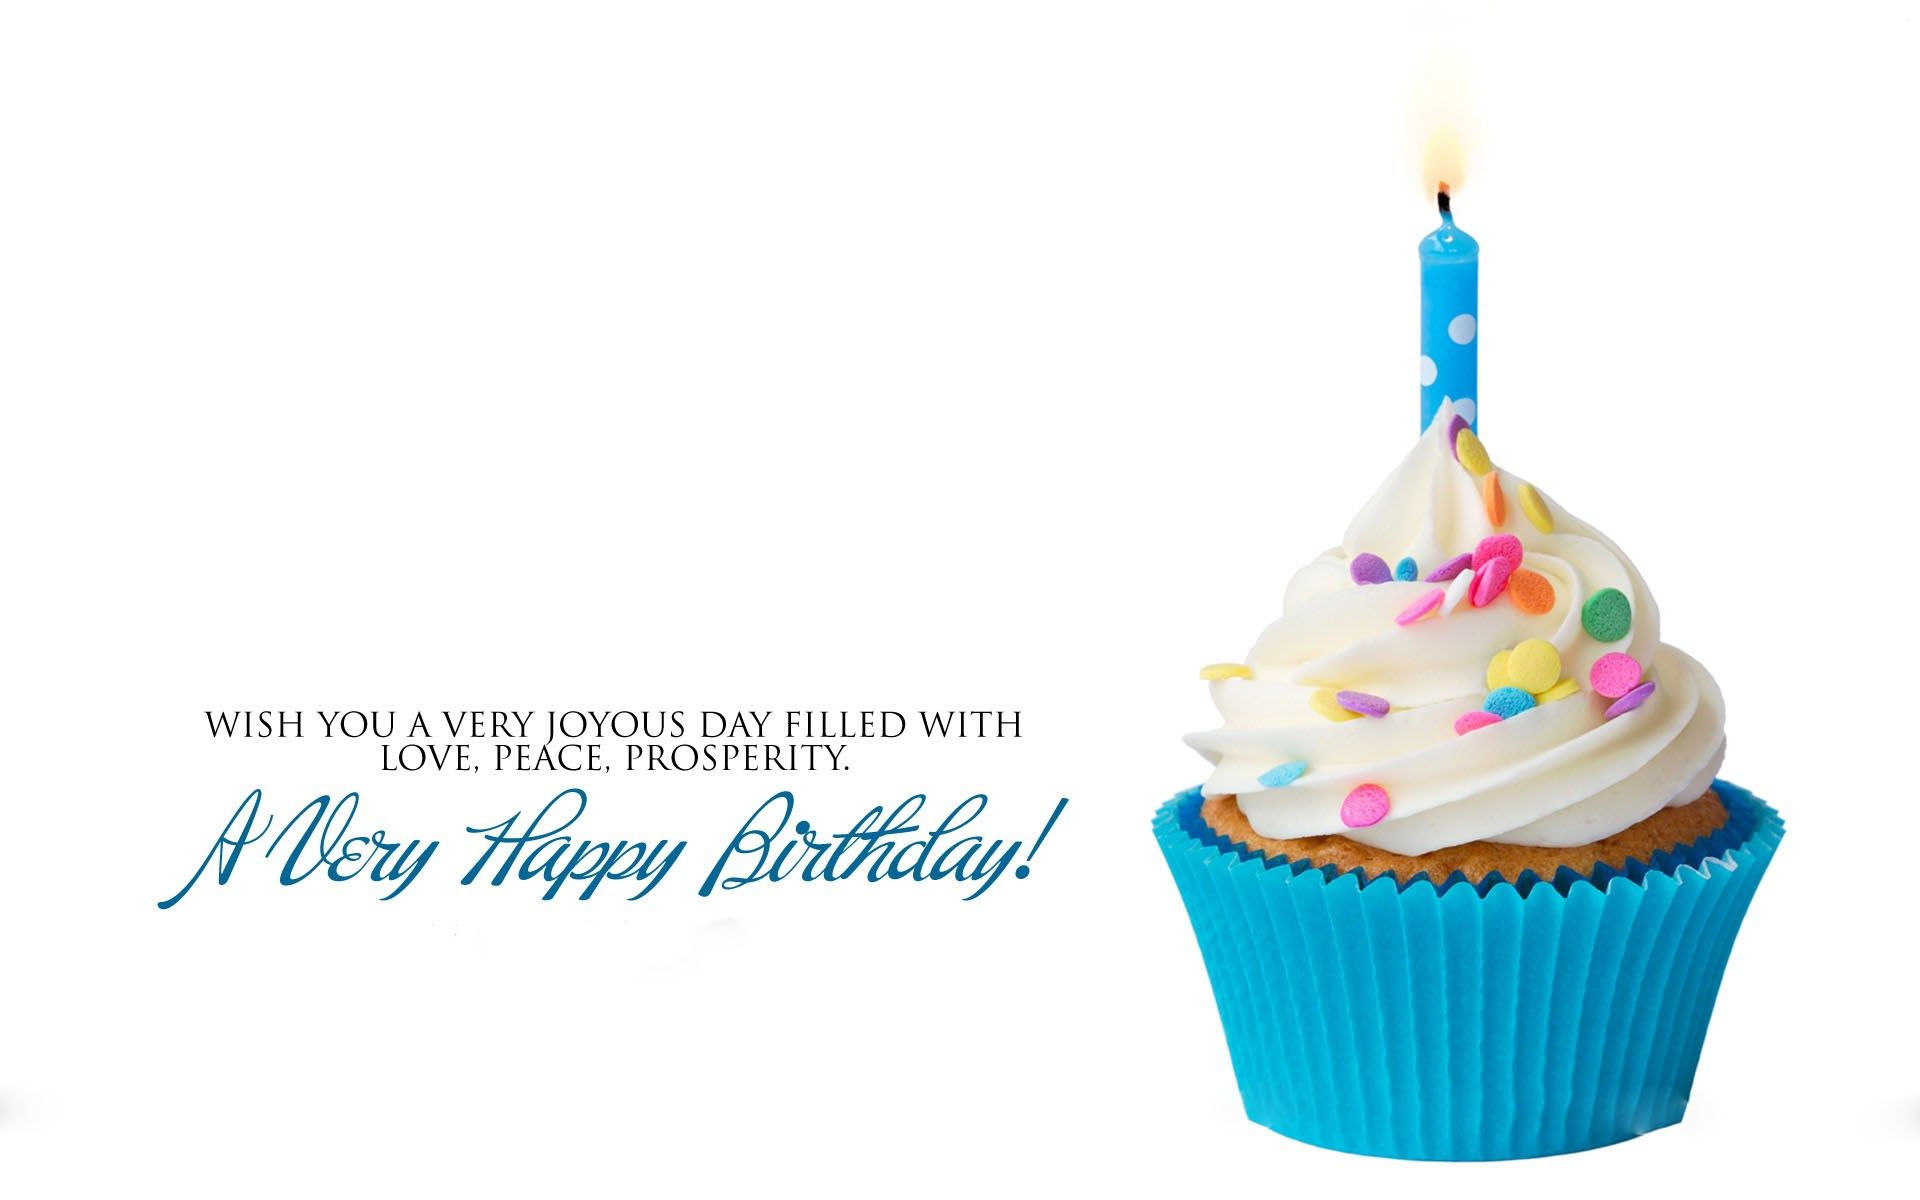 Free Download Happy Birthday Wishes Wallpaper Images Sharovarka